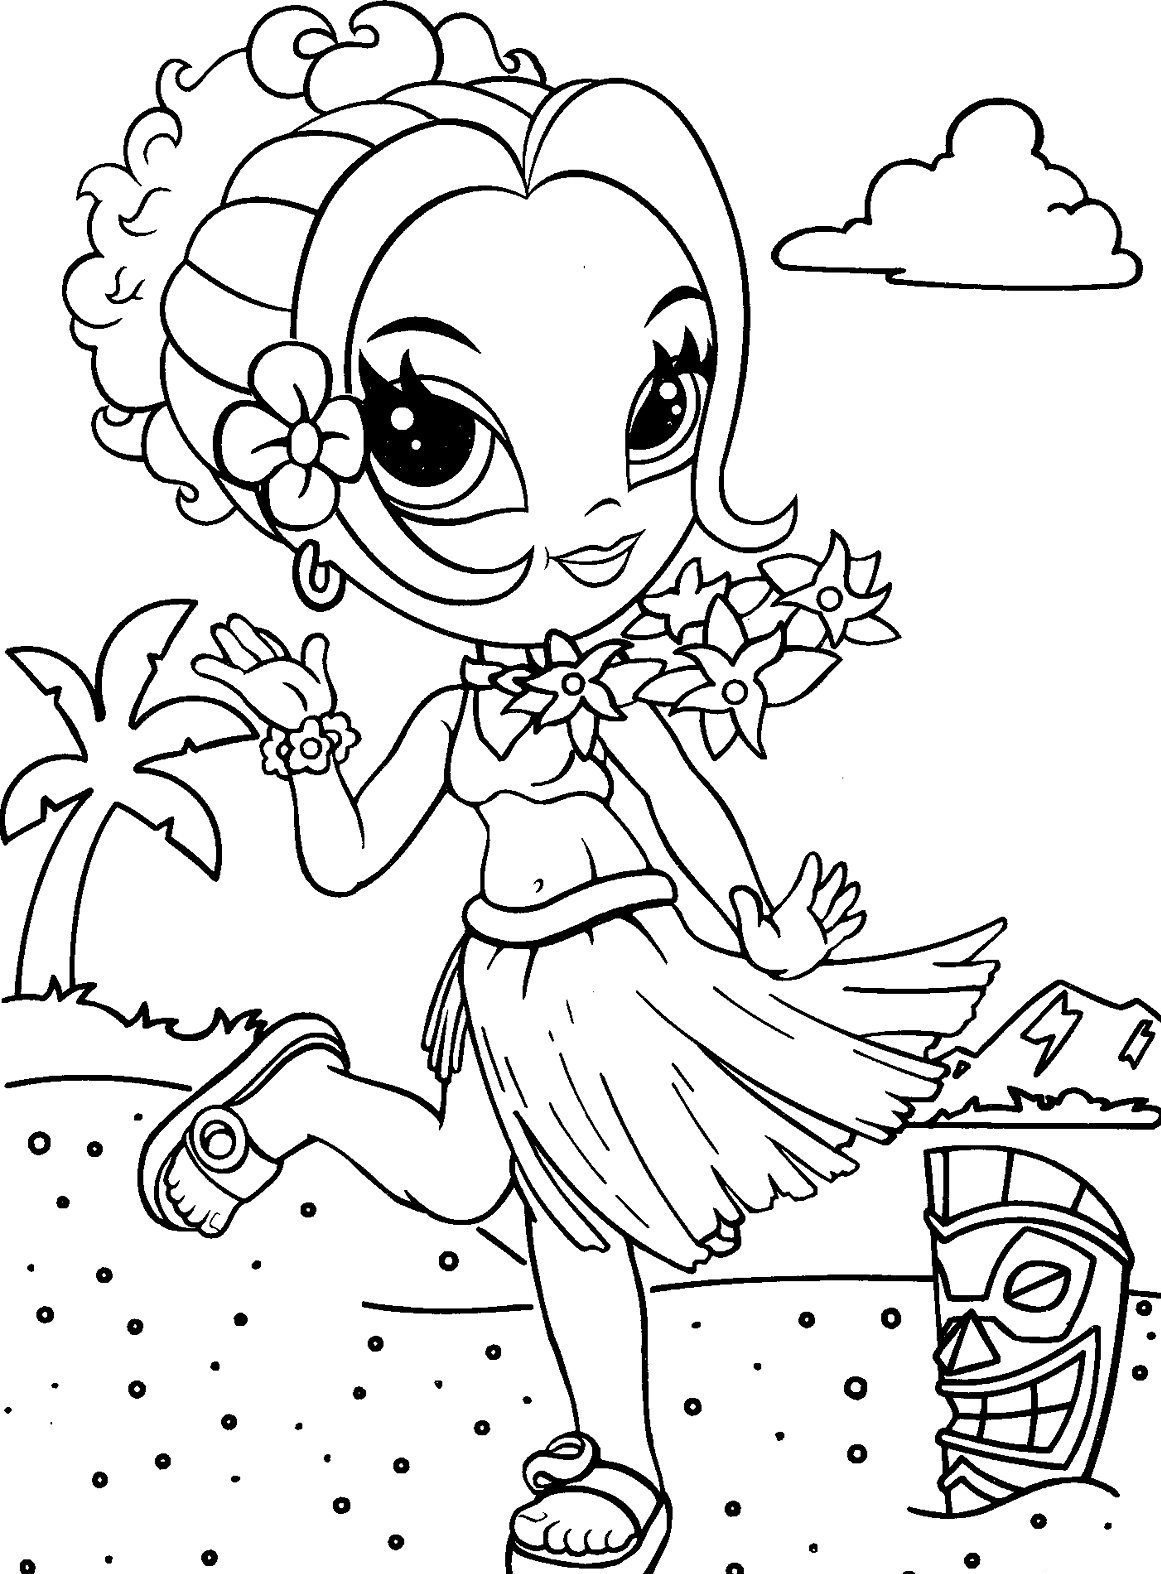 lisa frank puppy coloring pages free printable lisa frank coloring pages for kids frank pages puppy lisa coloring